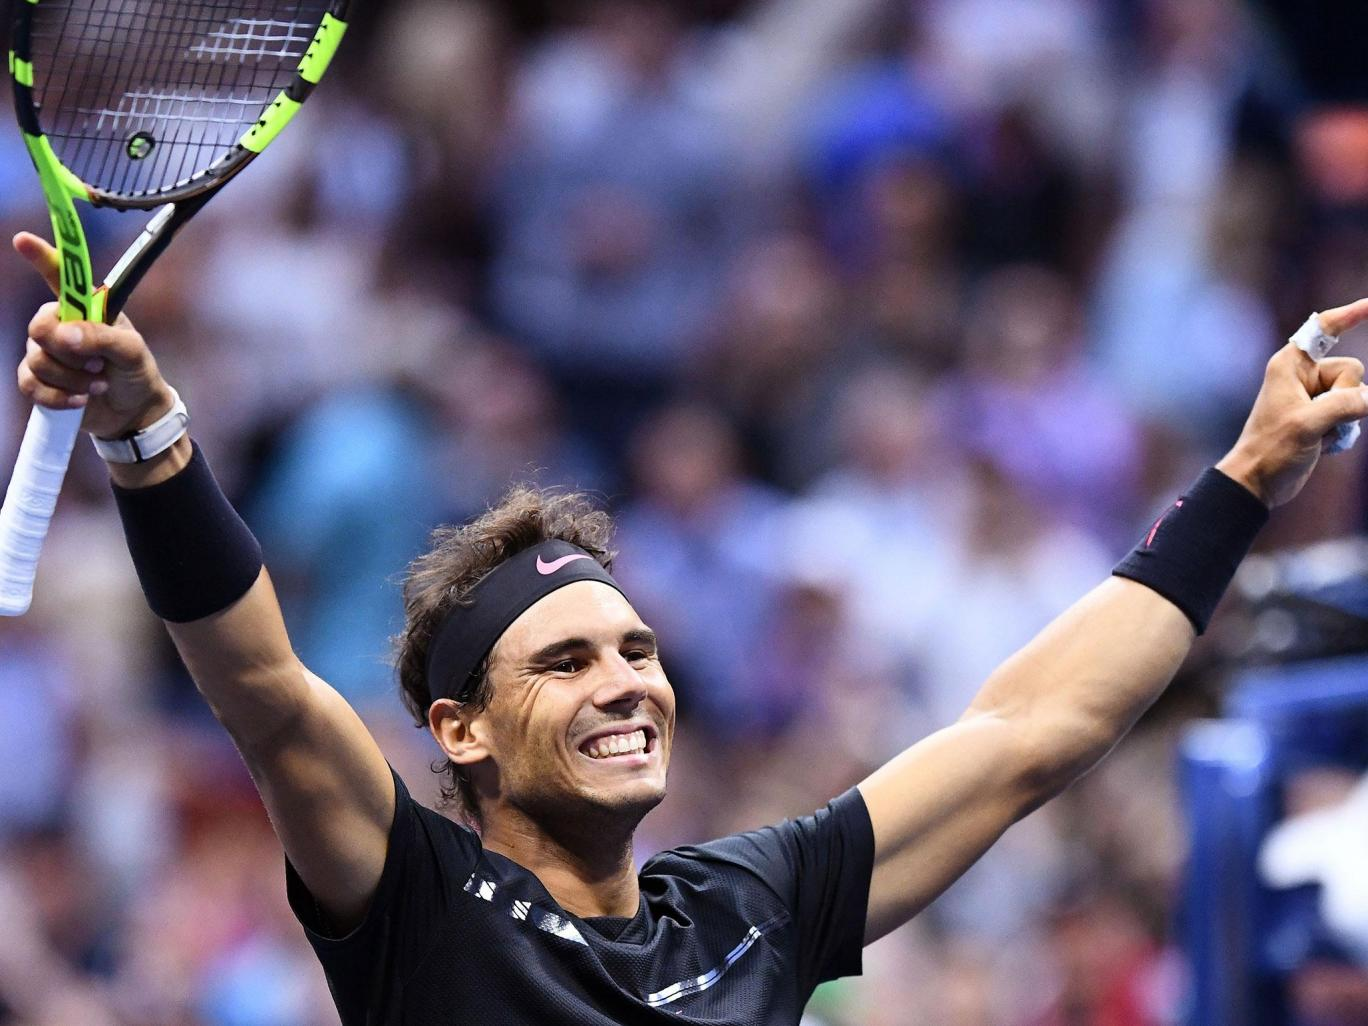 Rafa Nadal's 'passion' for tennis strong as ever after US Open victory